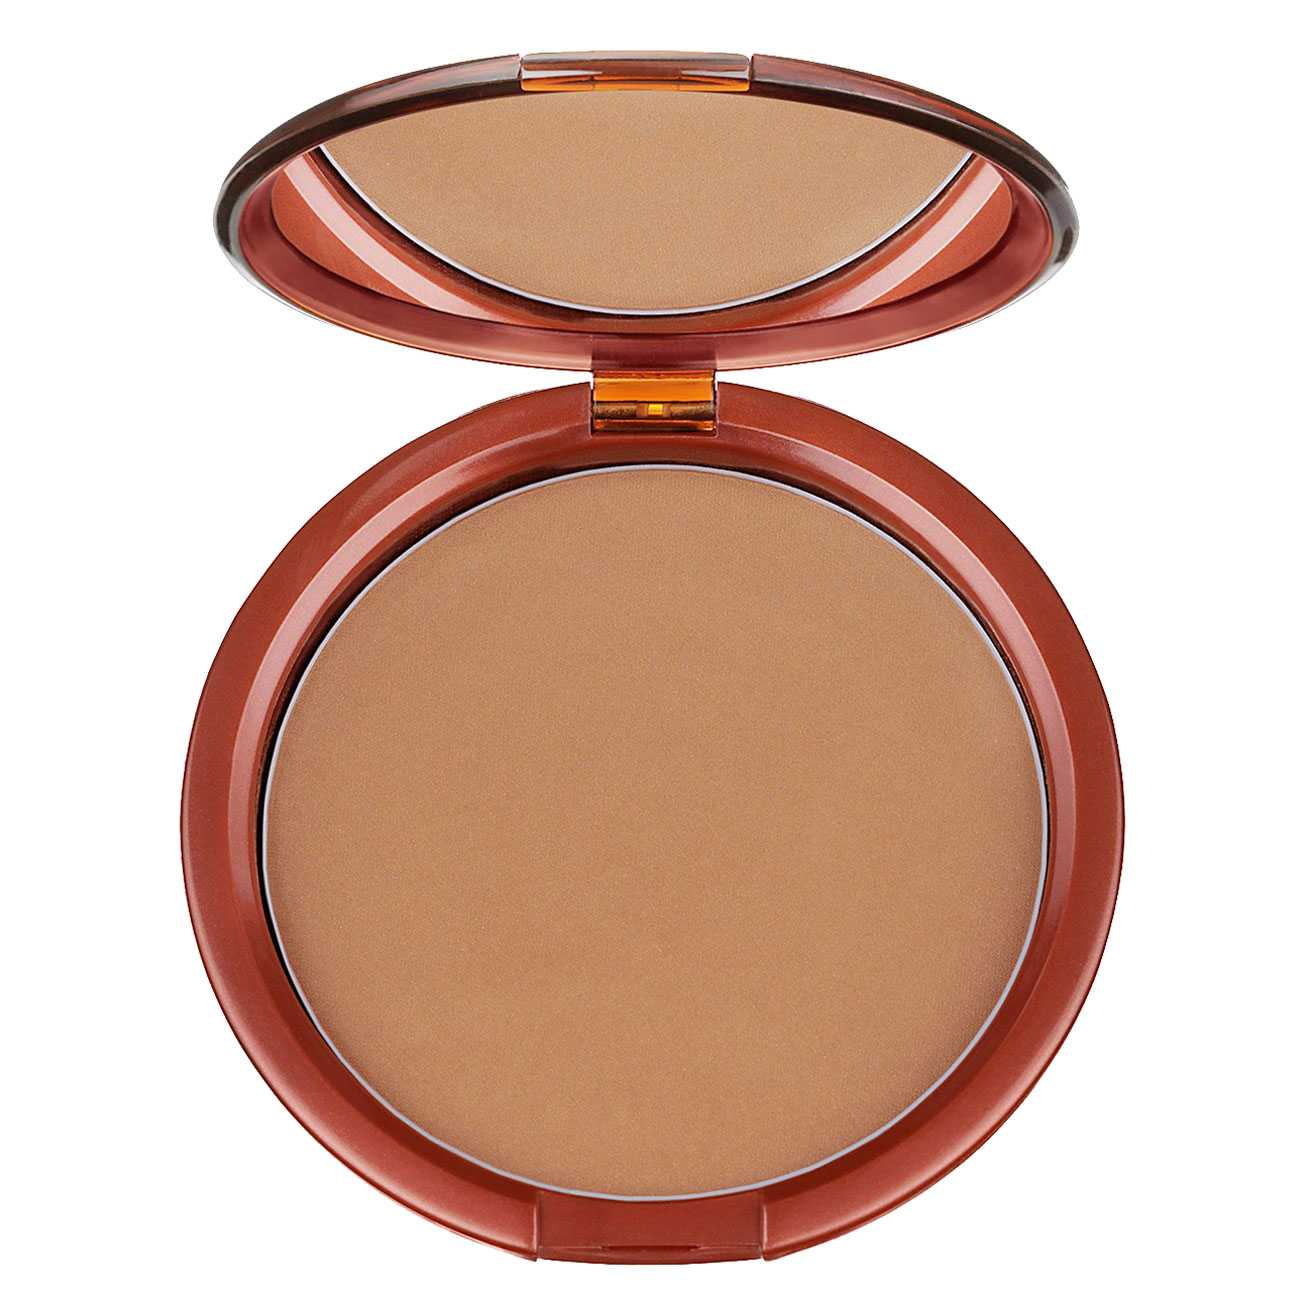 BRONZE GODDESS BRONZER 21 G LIGHT 1